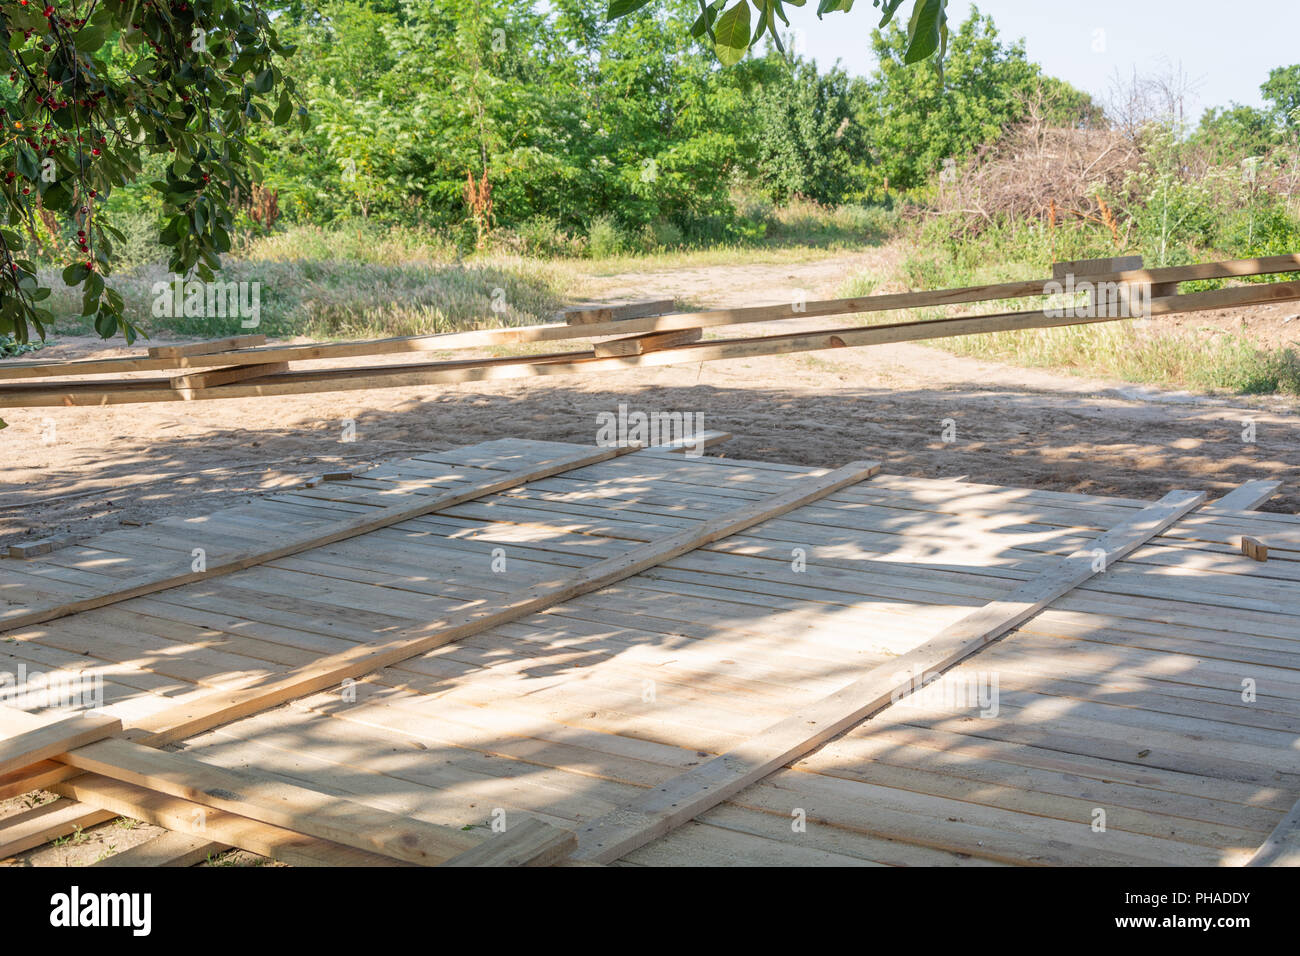 Wooden formworks fence. Formwork for foundation wooden fence. Stock Photo